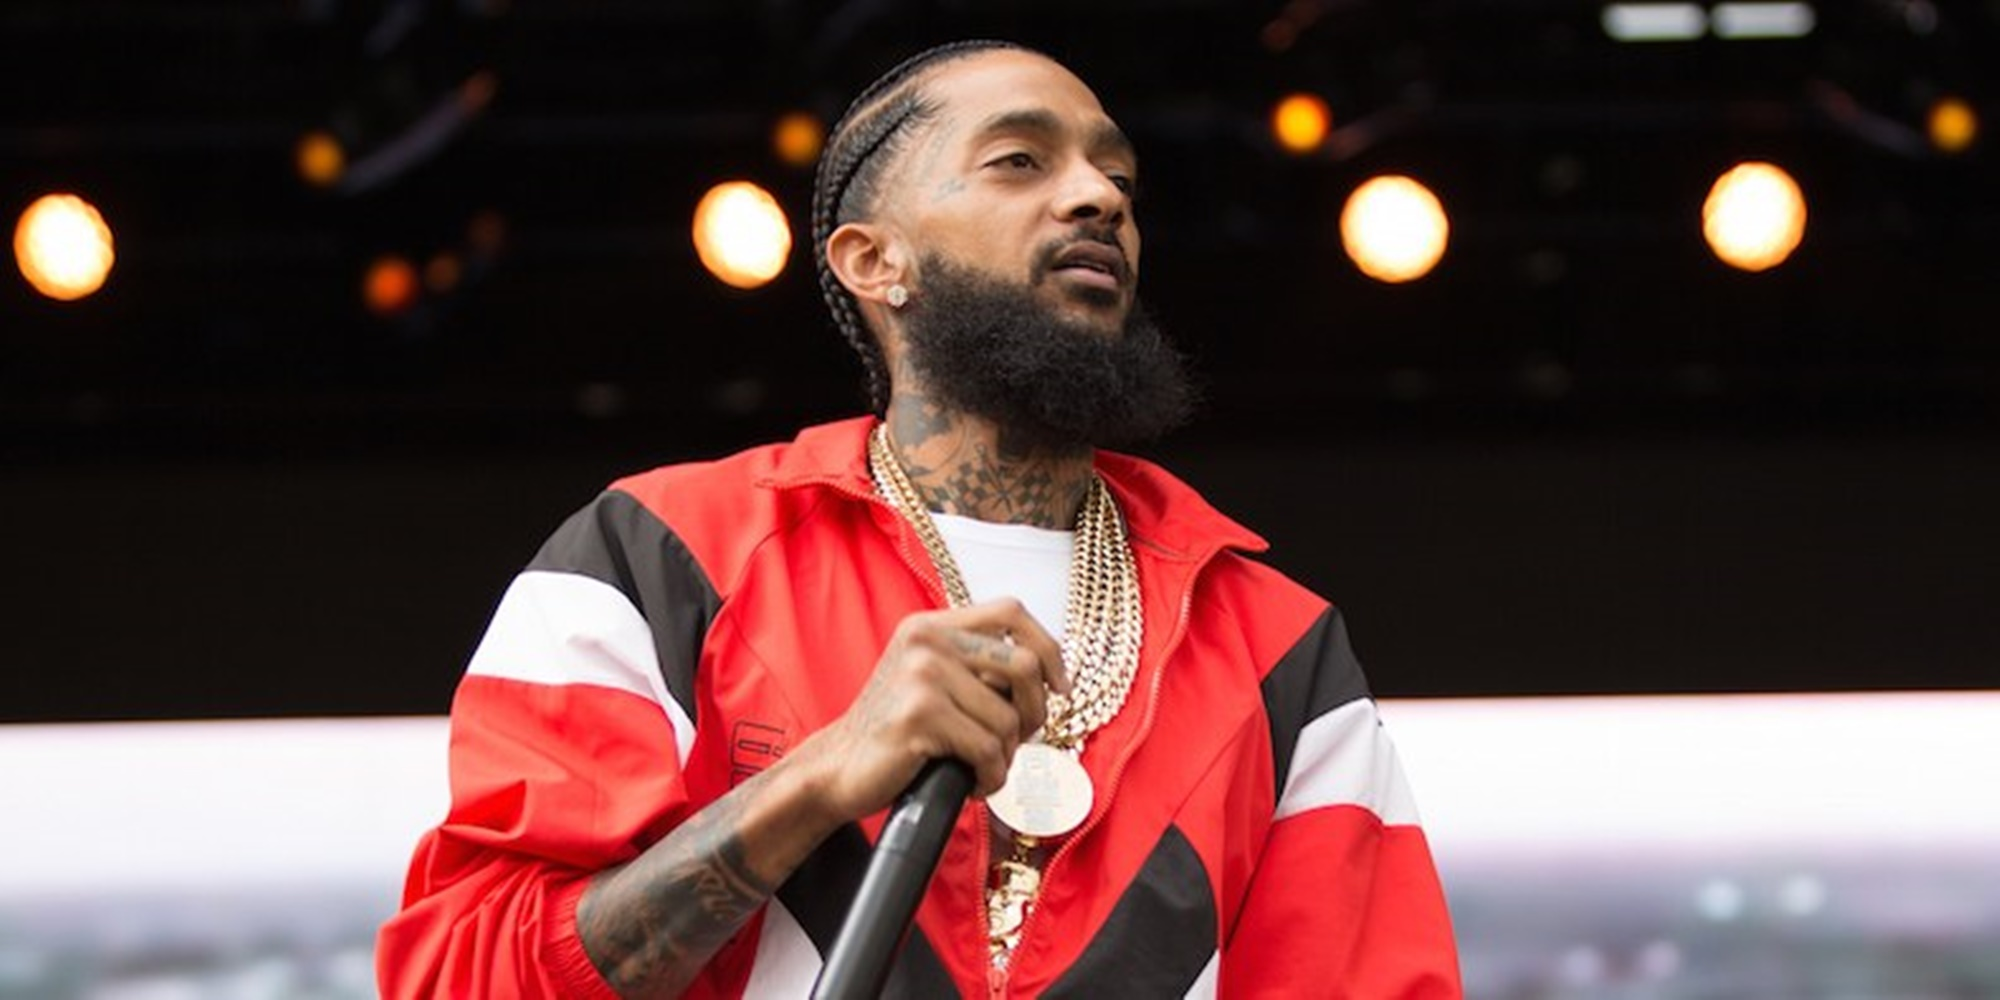 nipsey-hussles-death-inspires-crips-and-bloods-to-get-together-as-his-family-remembers-his-unlimited-intellectual-capacity